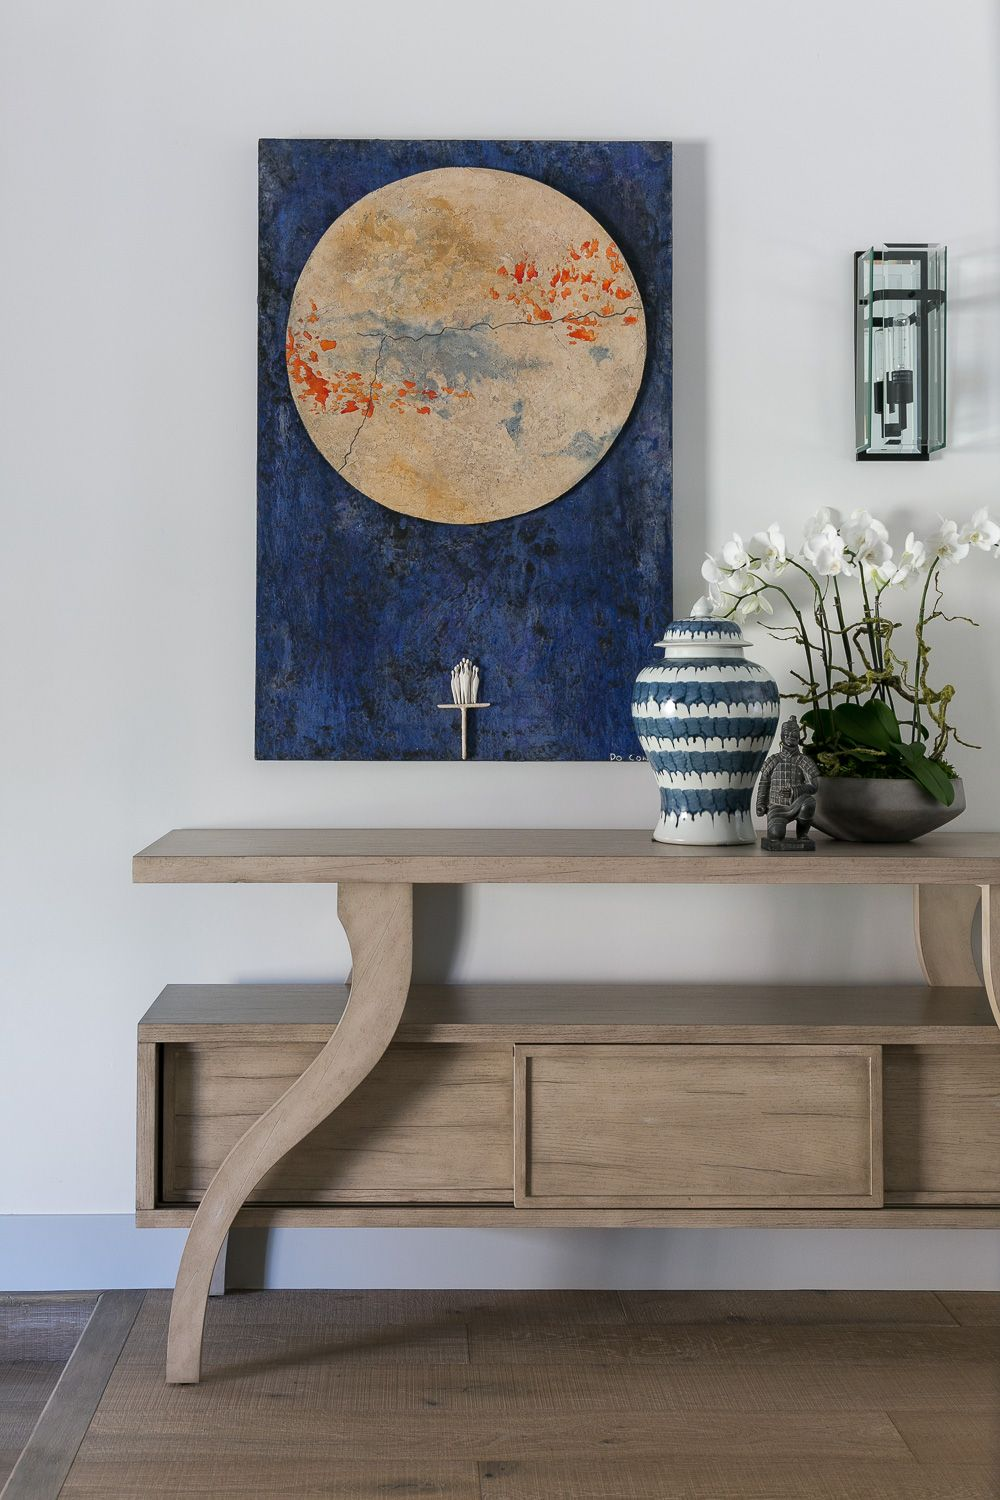 Interior design by price style and artful entry also rh pinterest